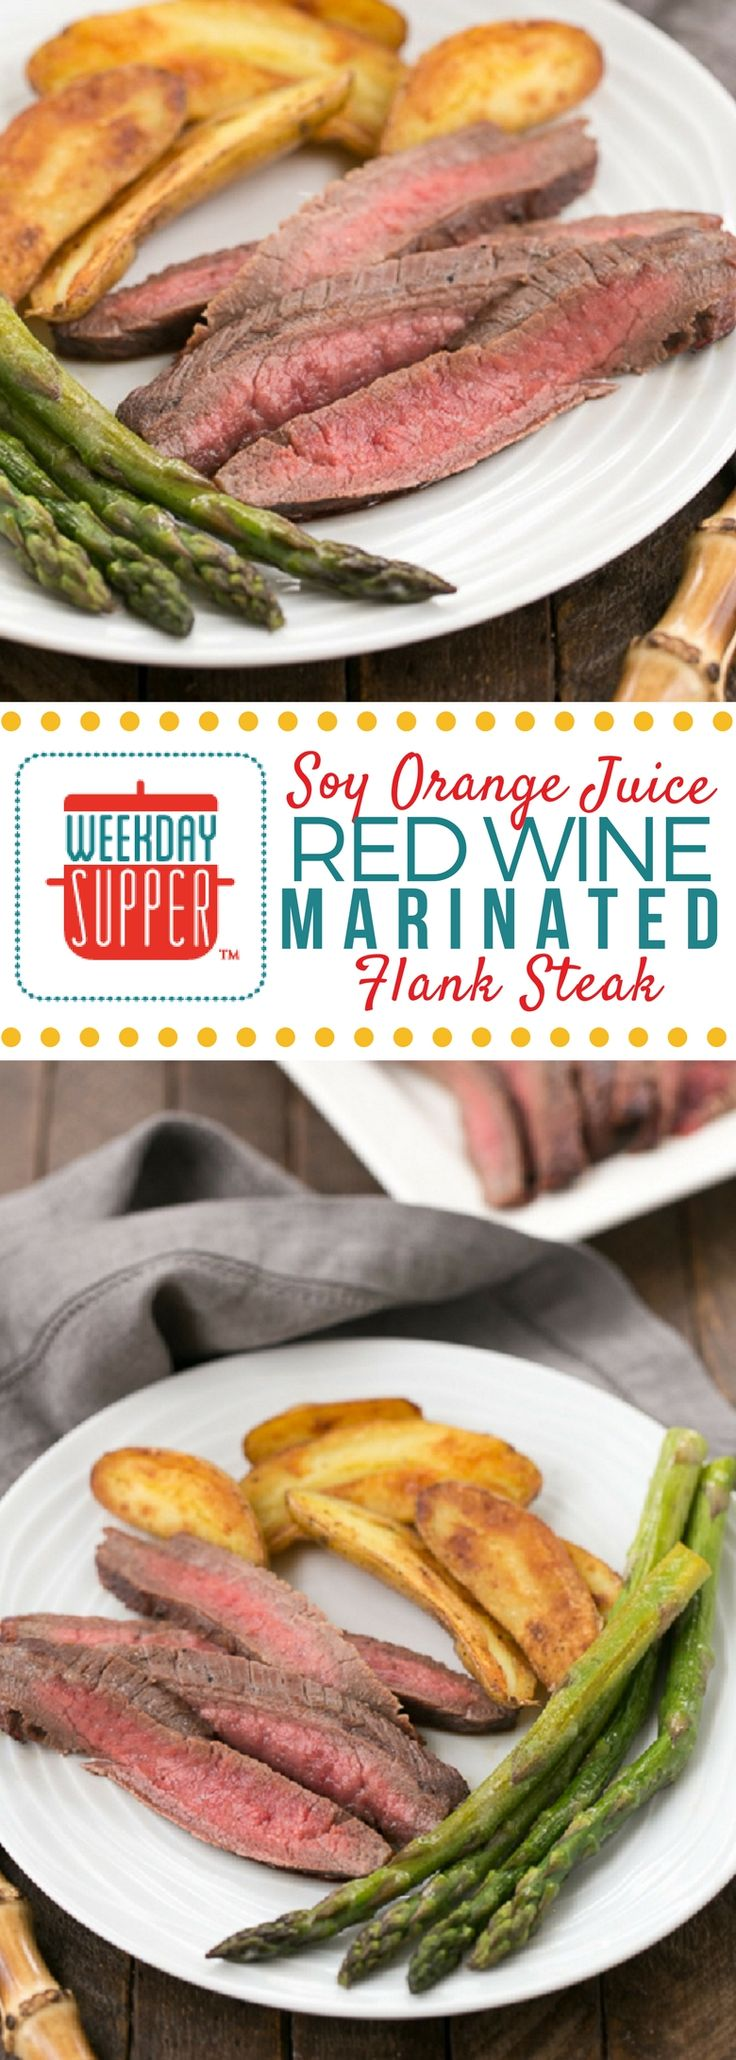 This simple marinade of soy, orange juice and red wine creates a perfectly flavorful, tender marinated flank steak your family will love! #WeekdaySupper #BestBeef